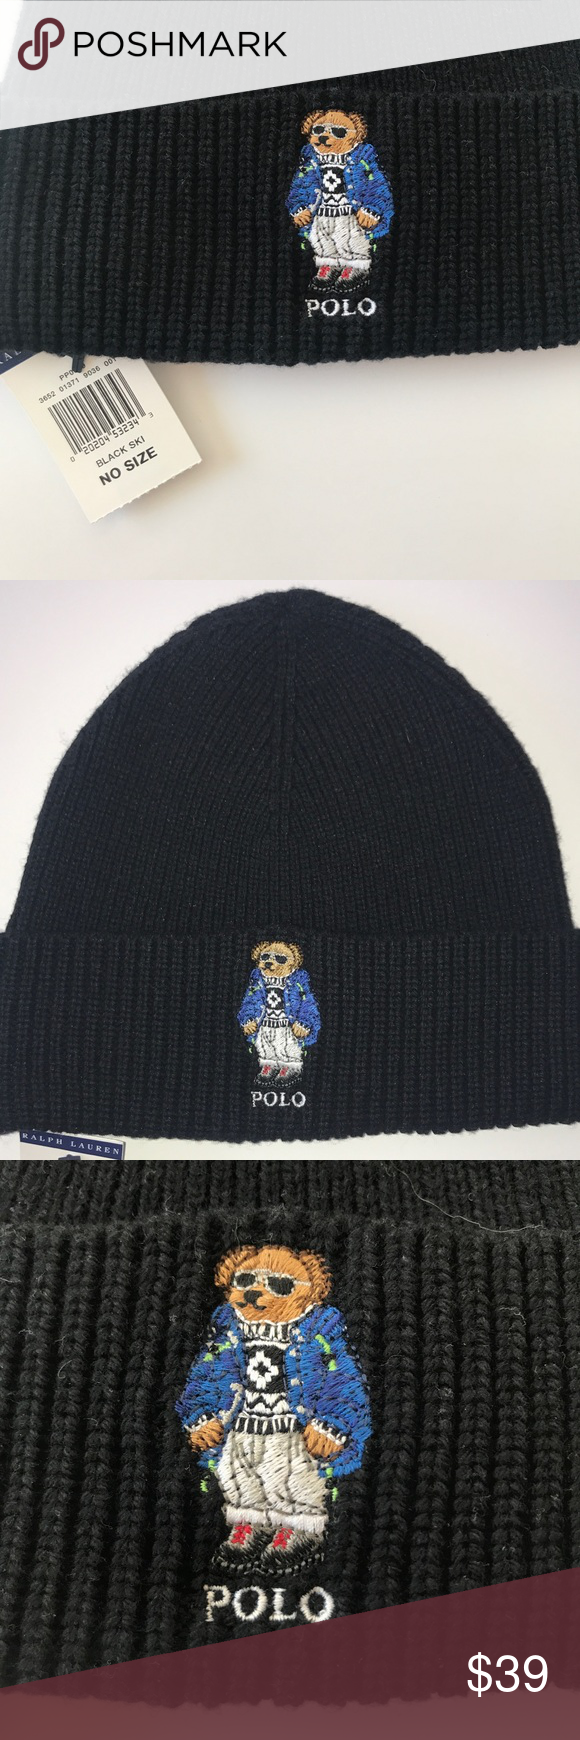 0a01cbcf00d73 POLO  Ski Bear  Hat  49 by Ralph Lauren POLO RALPH LAUREN  Ski Bear ...